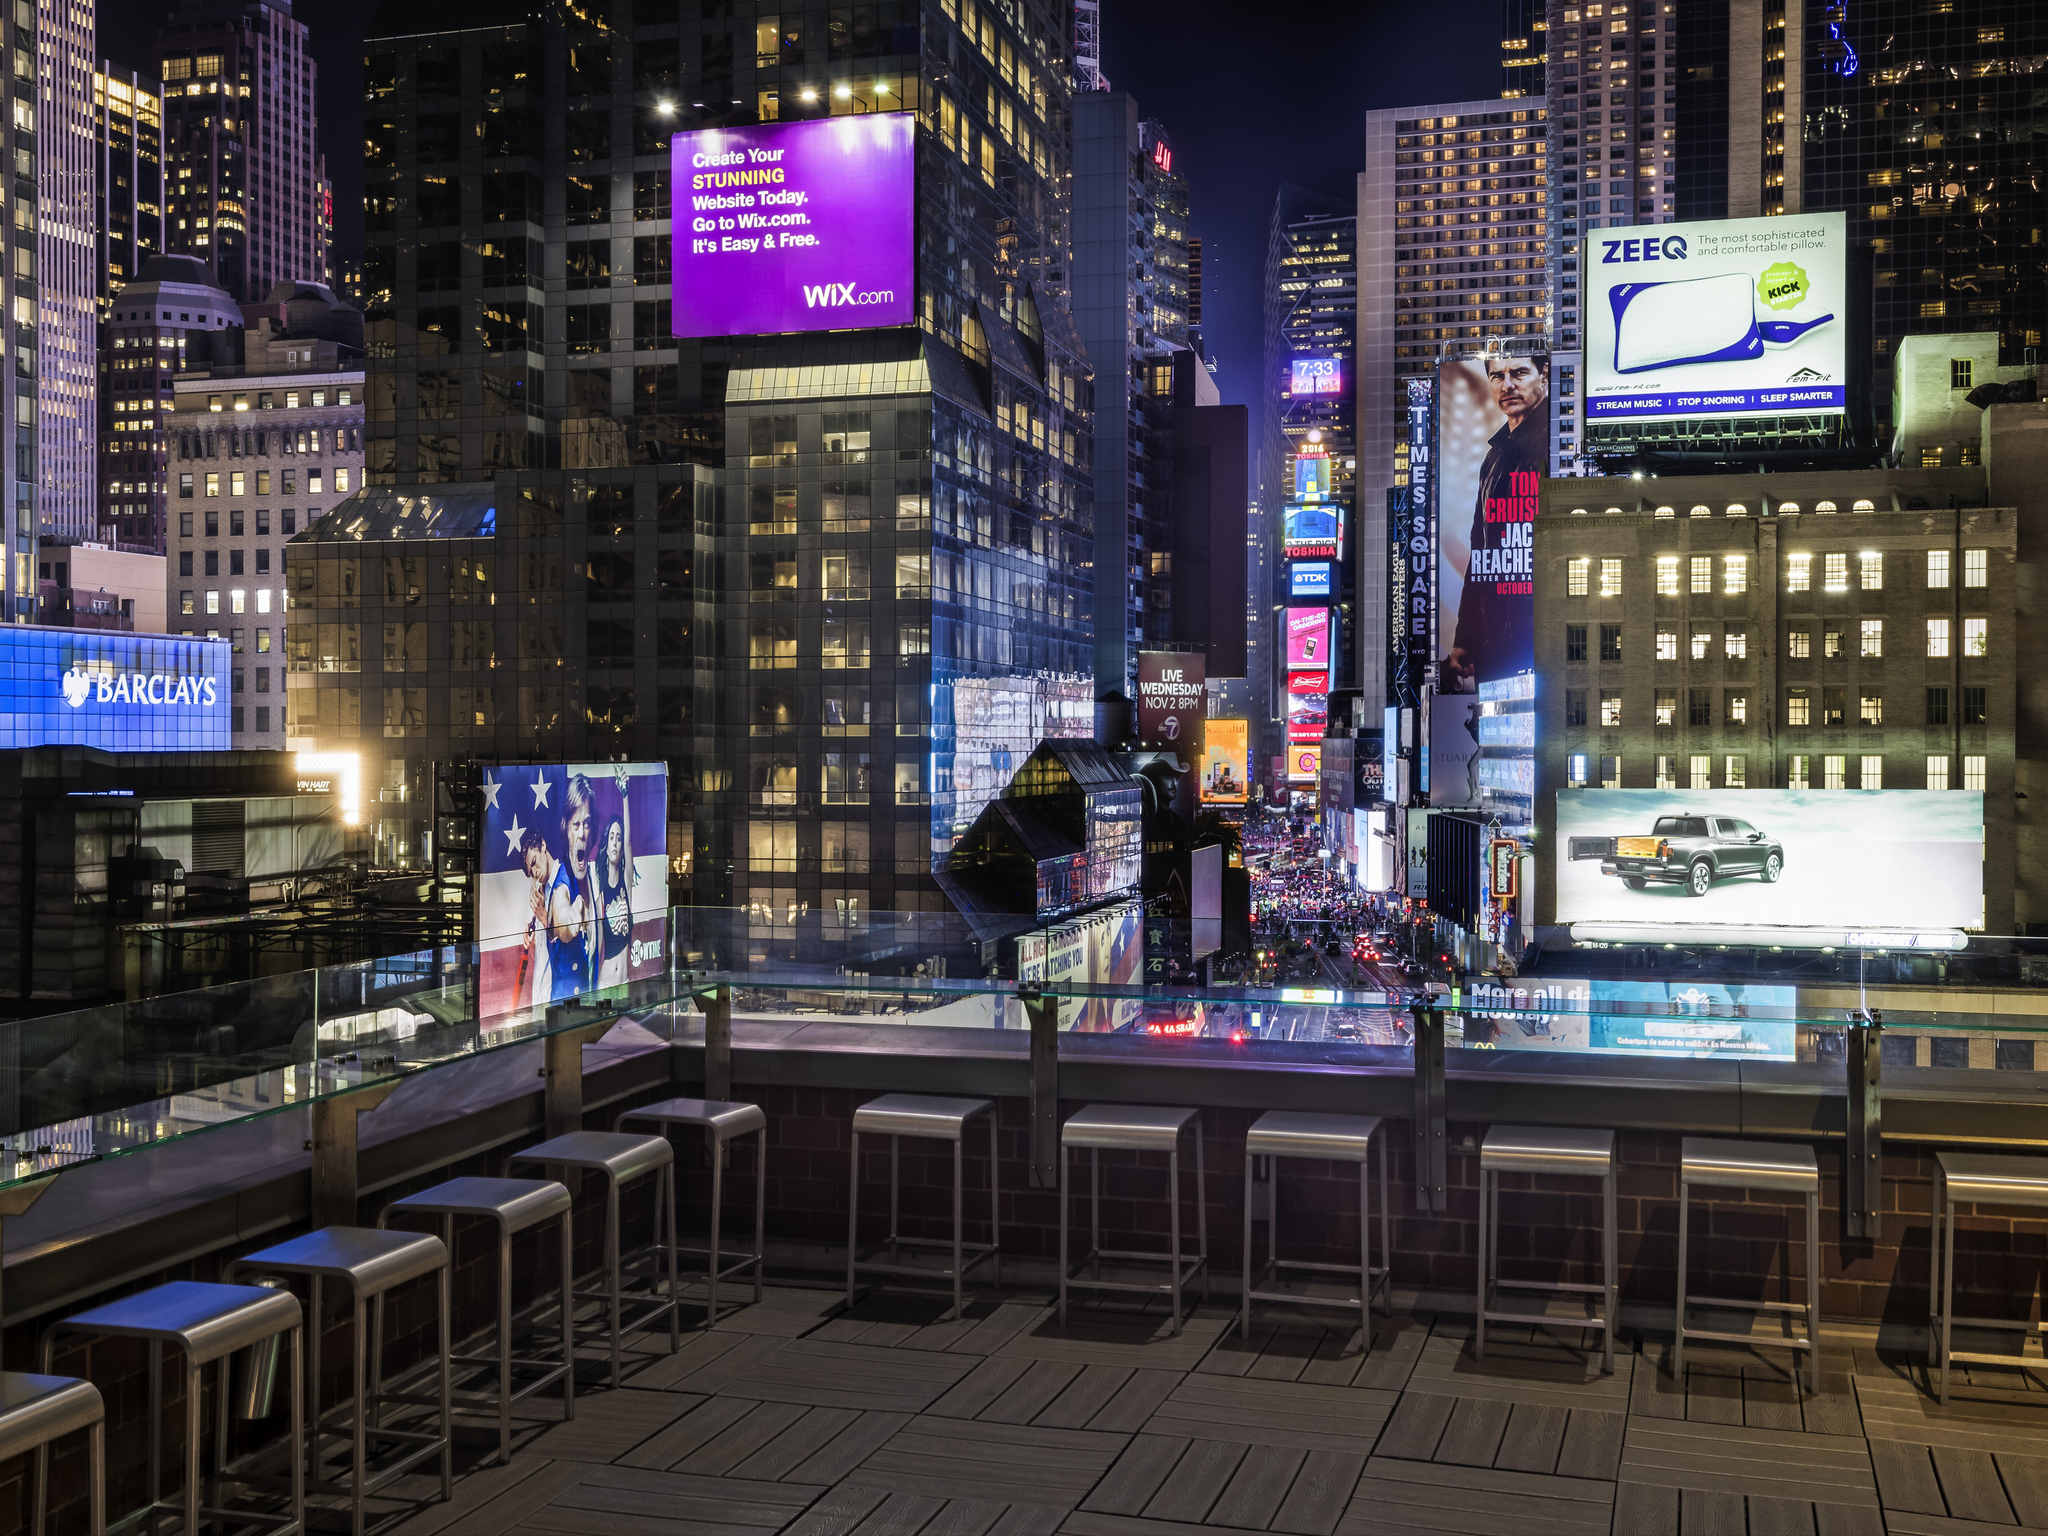 Hotel in new york city novotel new york times square hotel novotel new york times square reheart Images